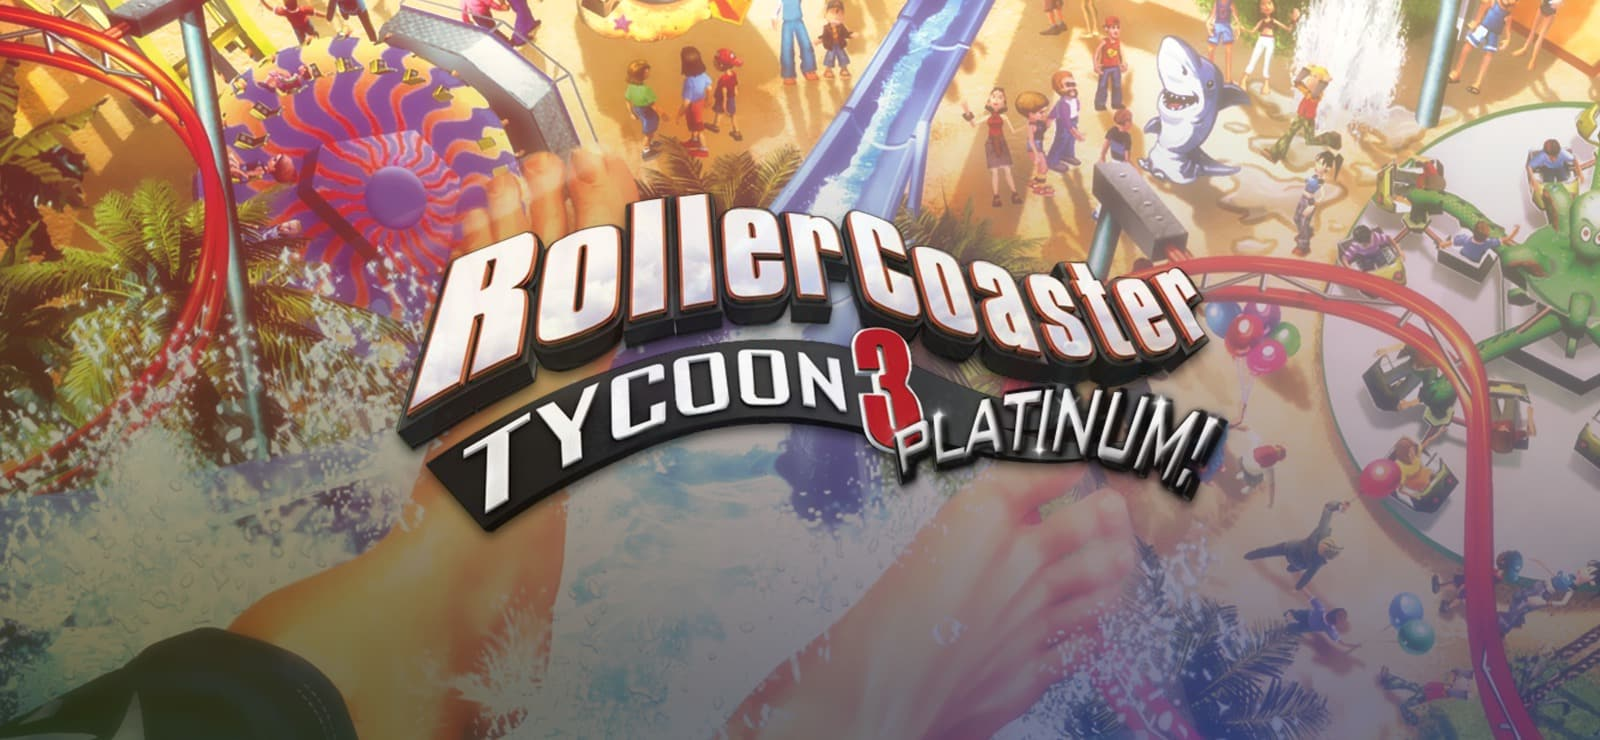 Rollercoaster Tycoon 3: Platinum! varies-with-device